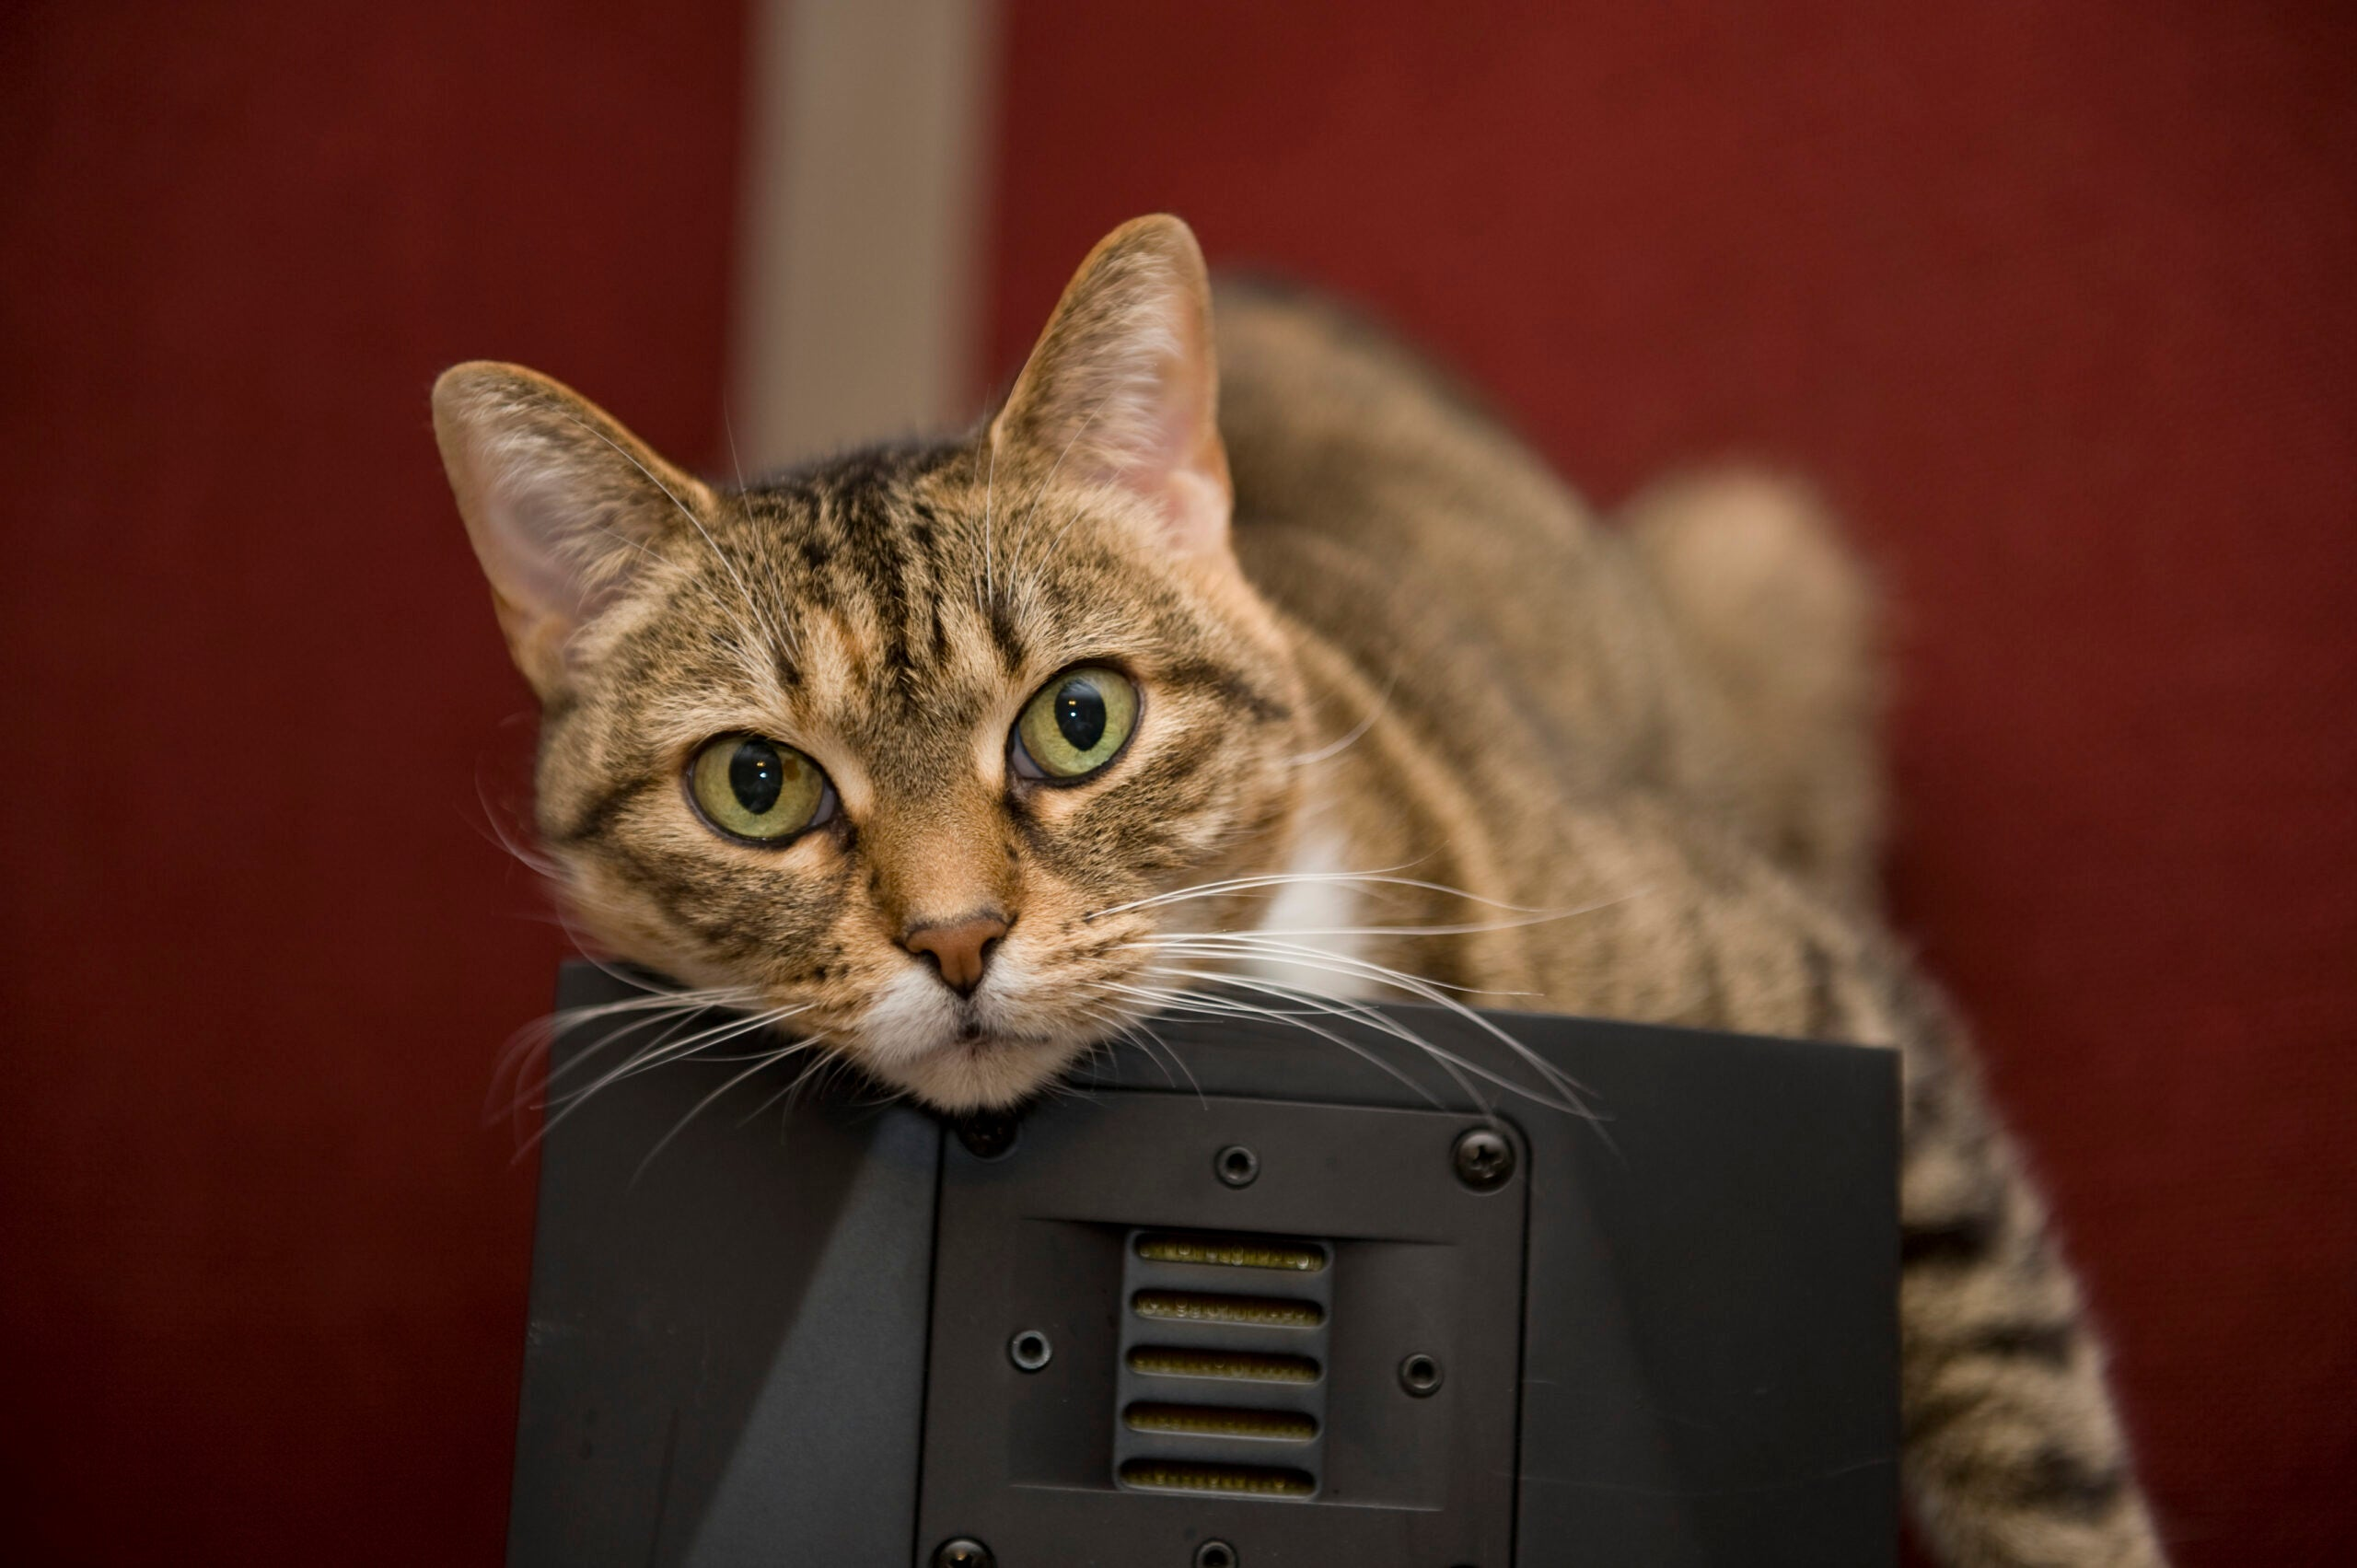 Now You Can Kickstart A Music Album Just For Your Cat